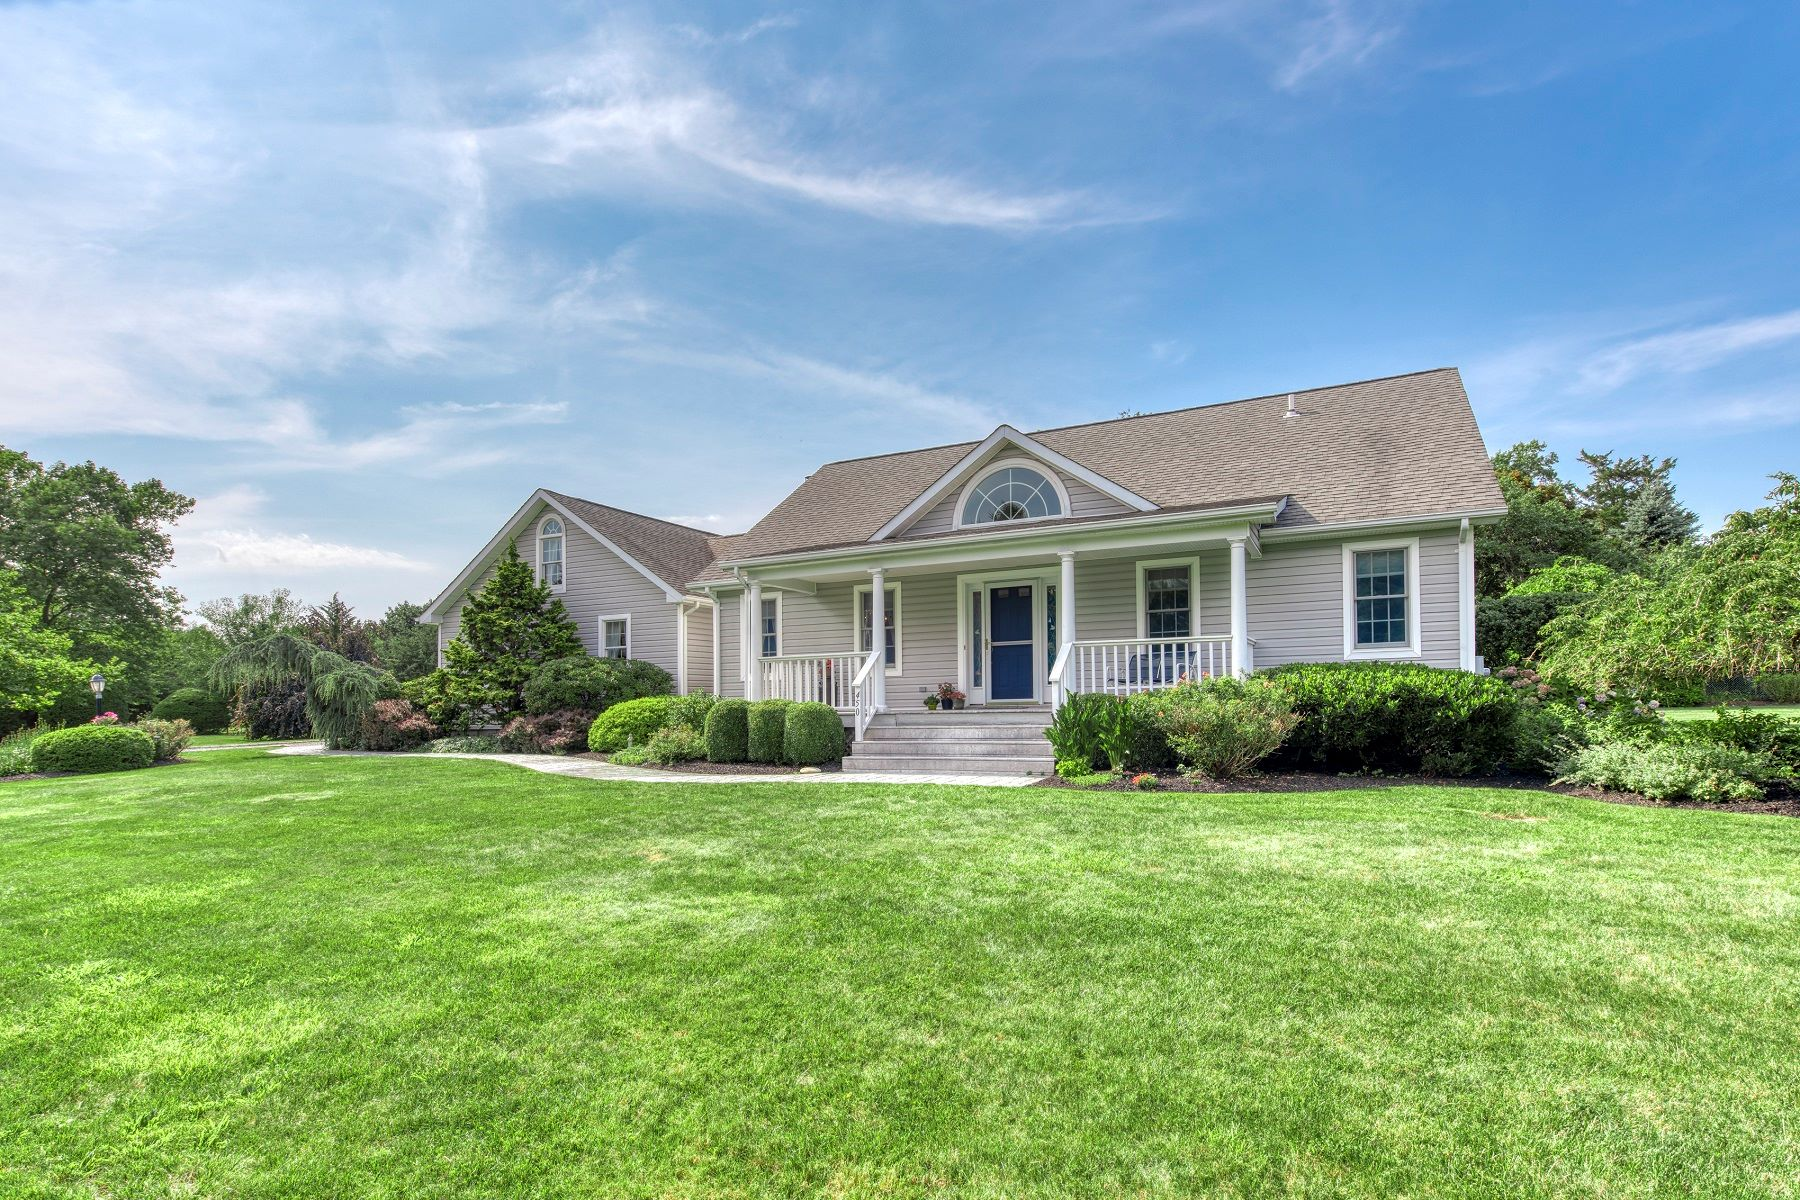 Single Family Homes for Active at Cutchogue 450 Fairway Dr Cutchogue, New York 11935 United States